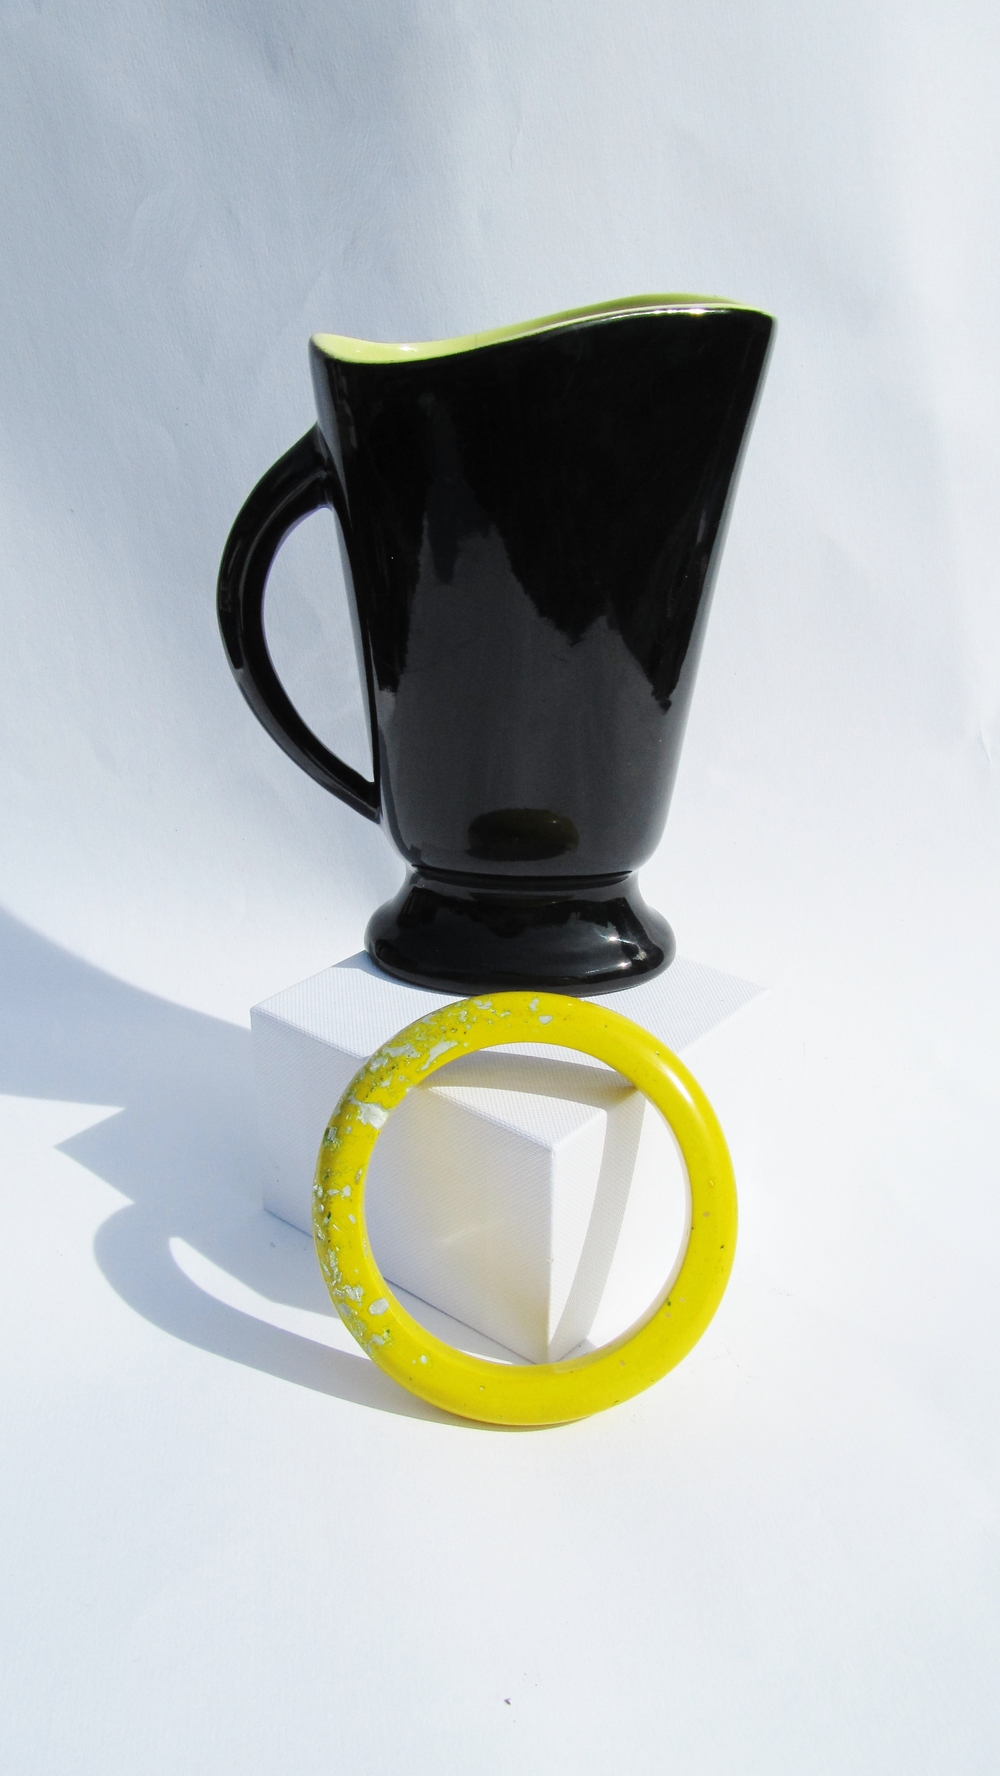 jade mellor yellow bangle jug.JPG